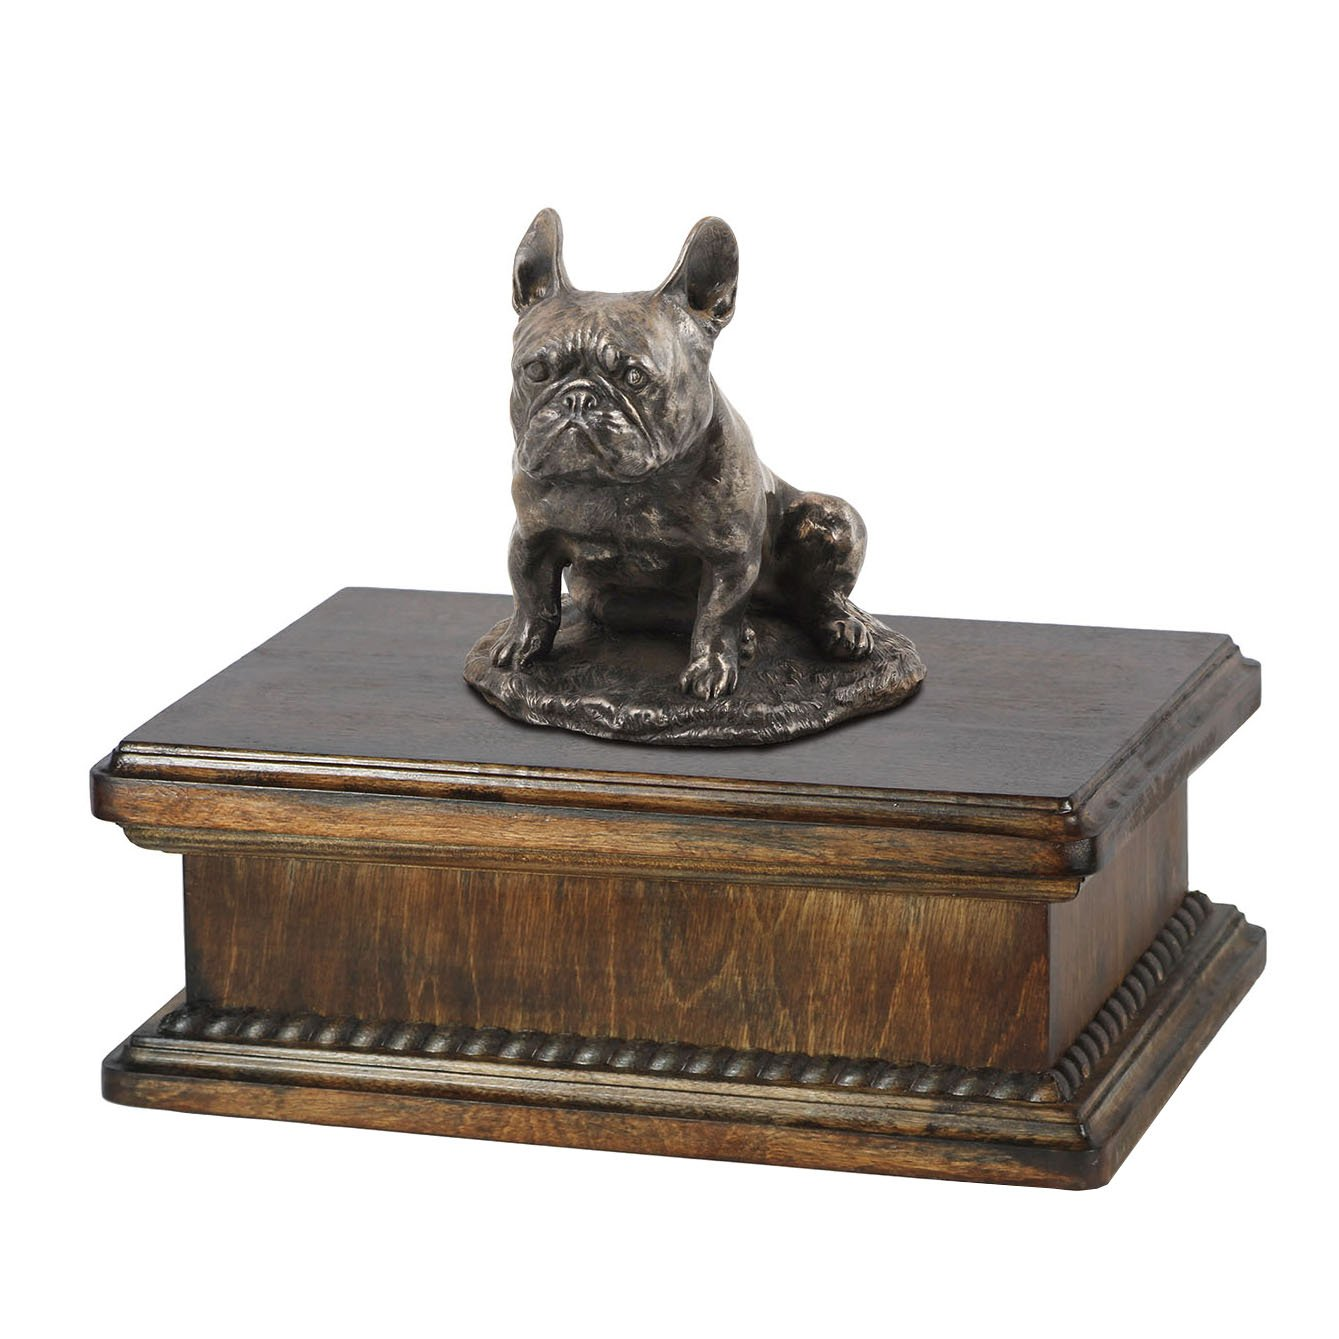 French Bulldog (sitting), memorial, urn for dog's ashes, with dog statue, exclusive, ArtDog